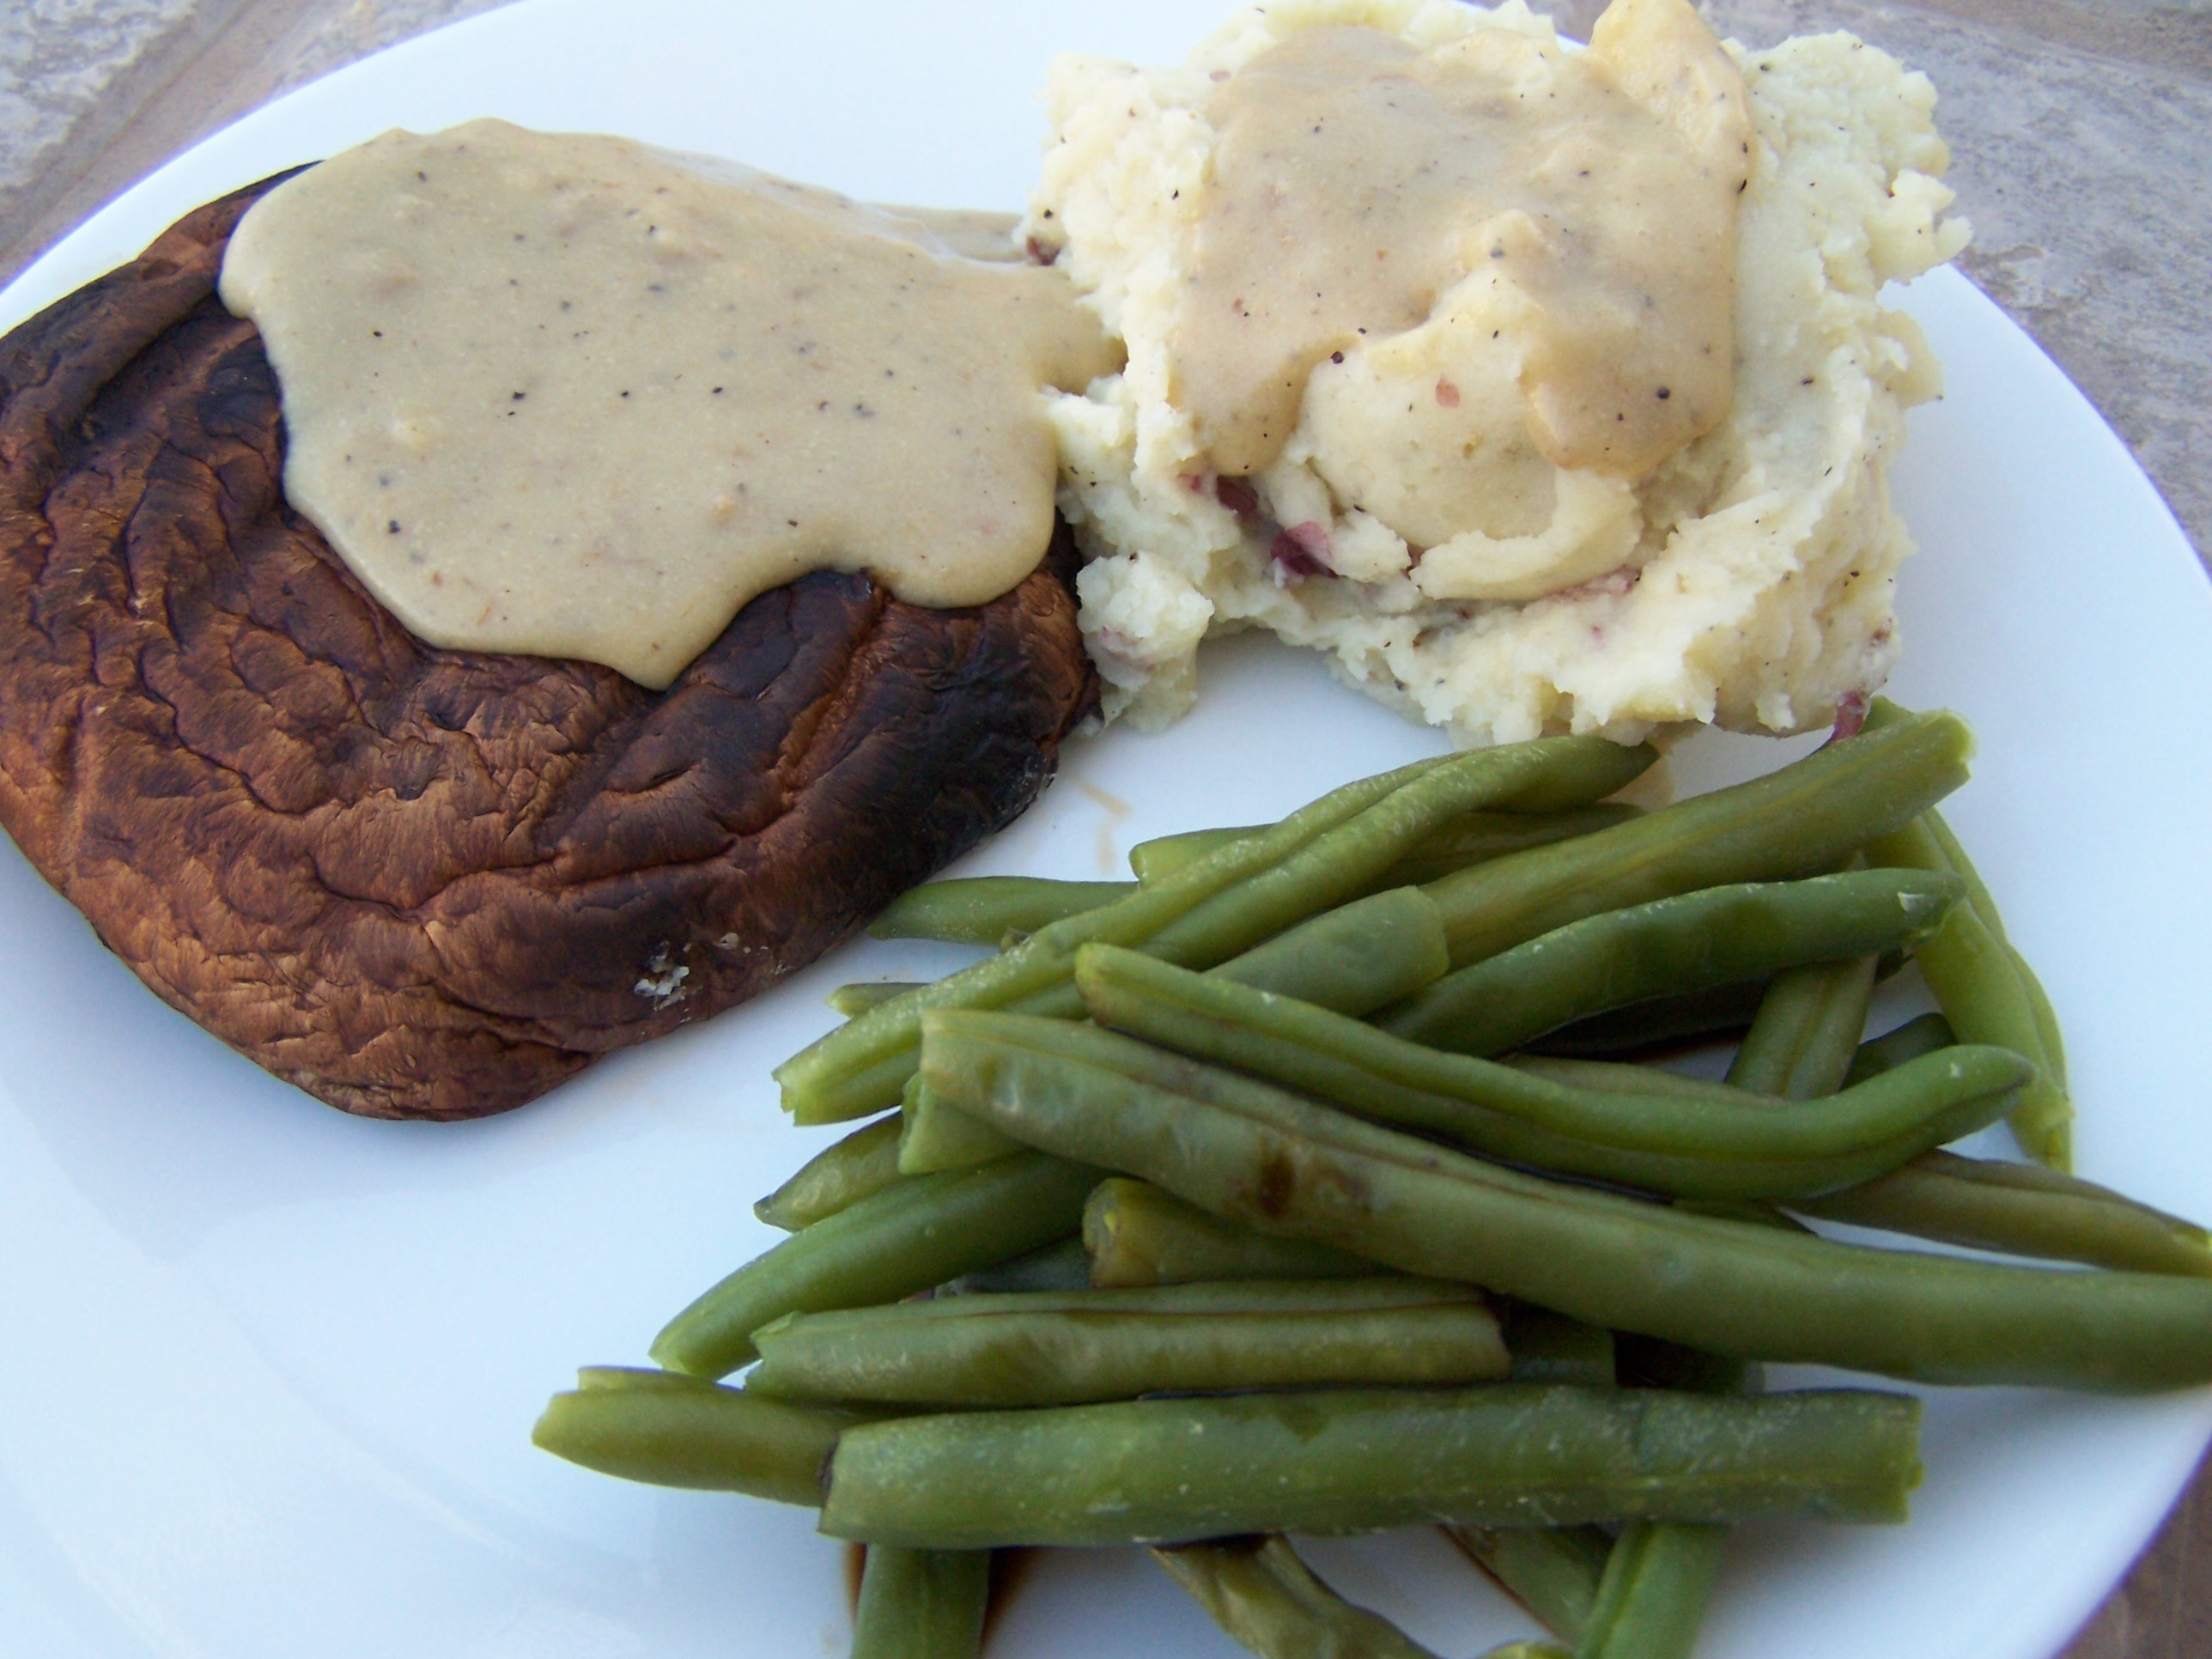 Grilled Portobello Steaks, Garlic Mashed Potatoes, green beans, and mushroom gravy.